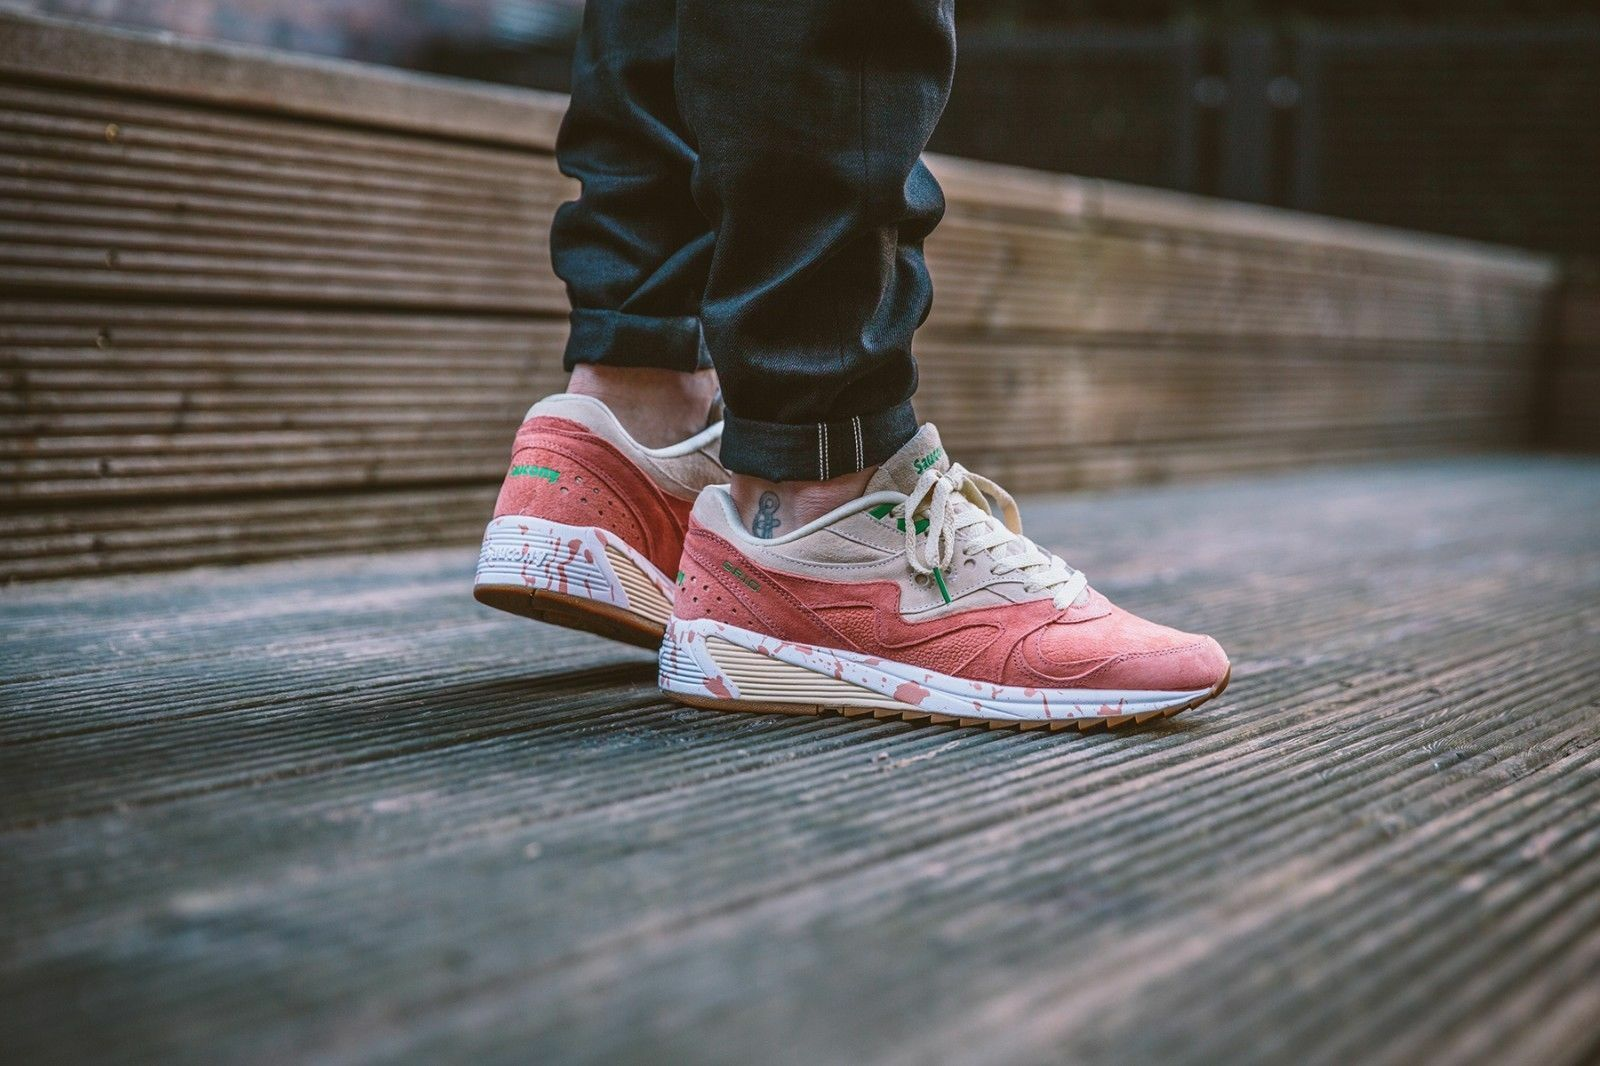 Saucony Grid 8000 CL Shrimp Scampi Lobster S70262-1 Pink